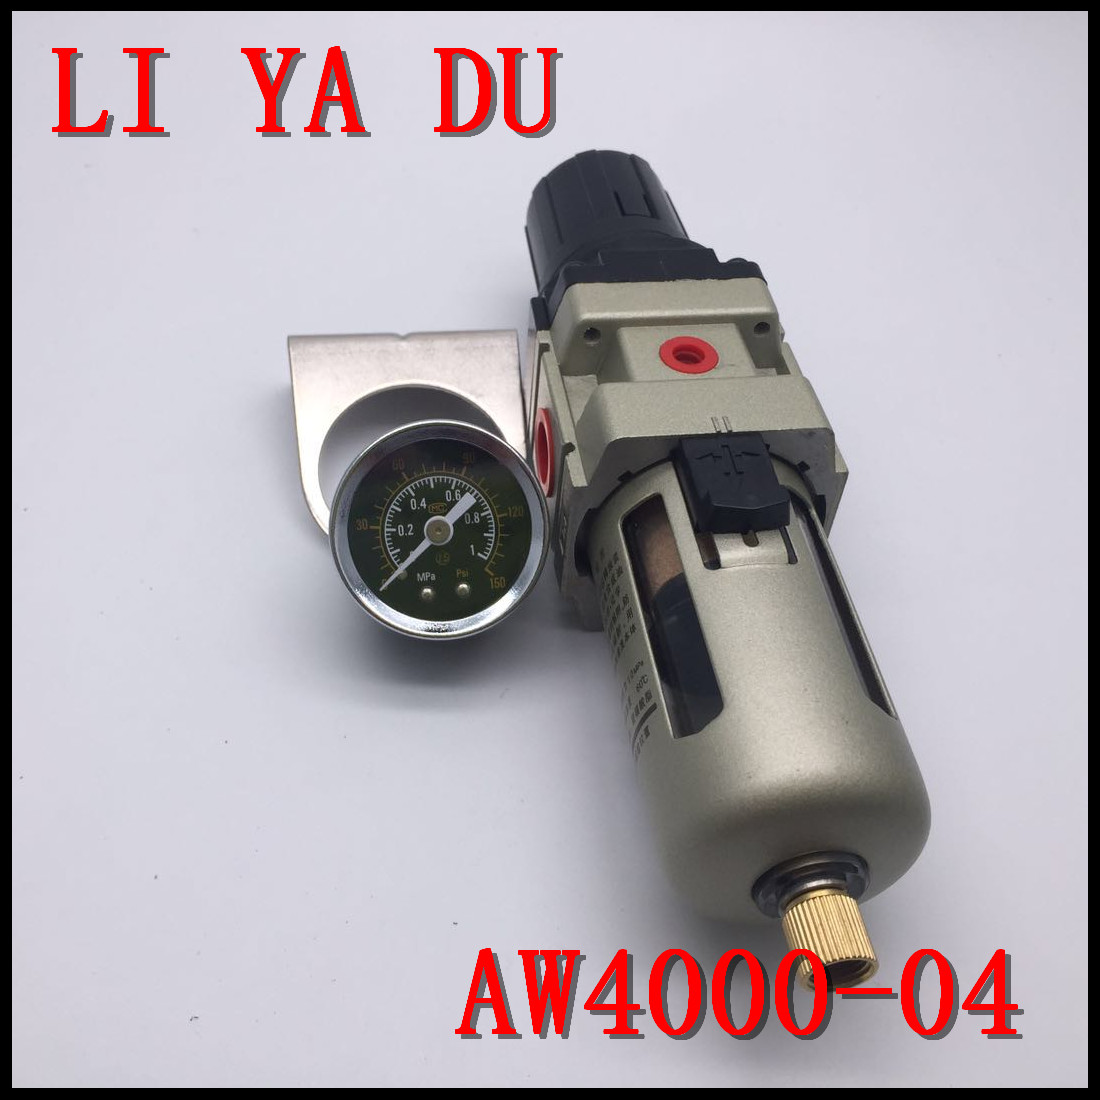 AW4000-04 G1/2 Pneumatic air compressor filter pressure reducing valve regulating valve free shipping g1 2 ports brand new pneumatics air filter regulator model aw4000 04 4000l min flow rate 10pcs